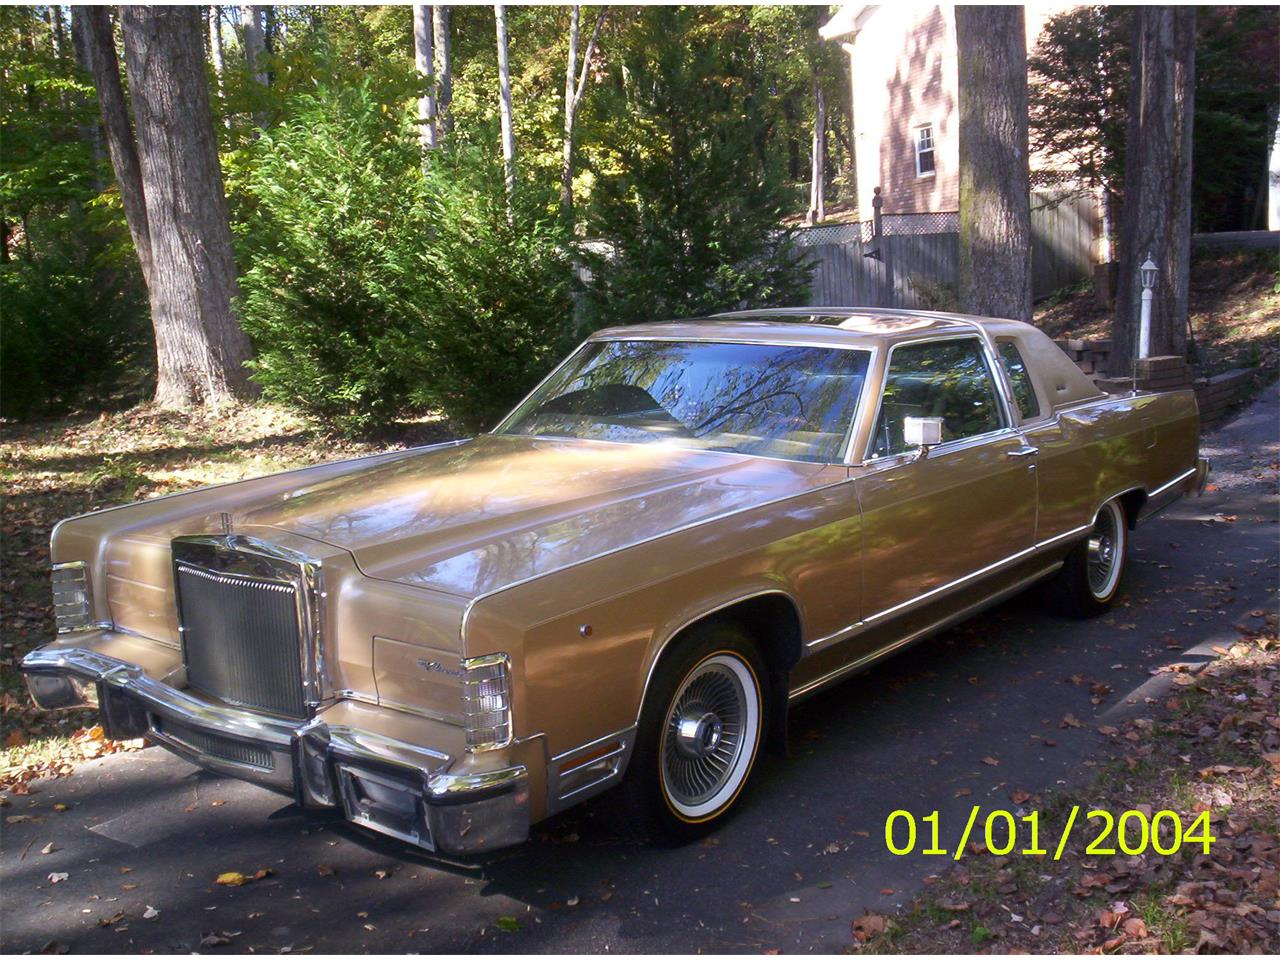 Large Picture of '79 Lincoln Town Car located in Cobb County Georgia - $17,000.00 Offered by a Private Seller - C6IM